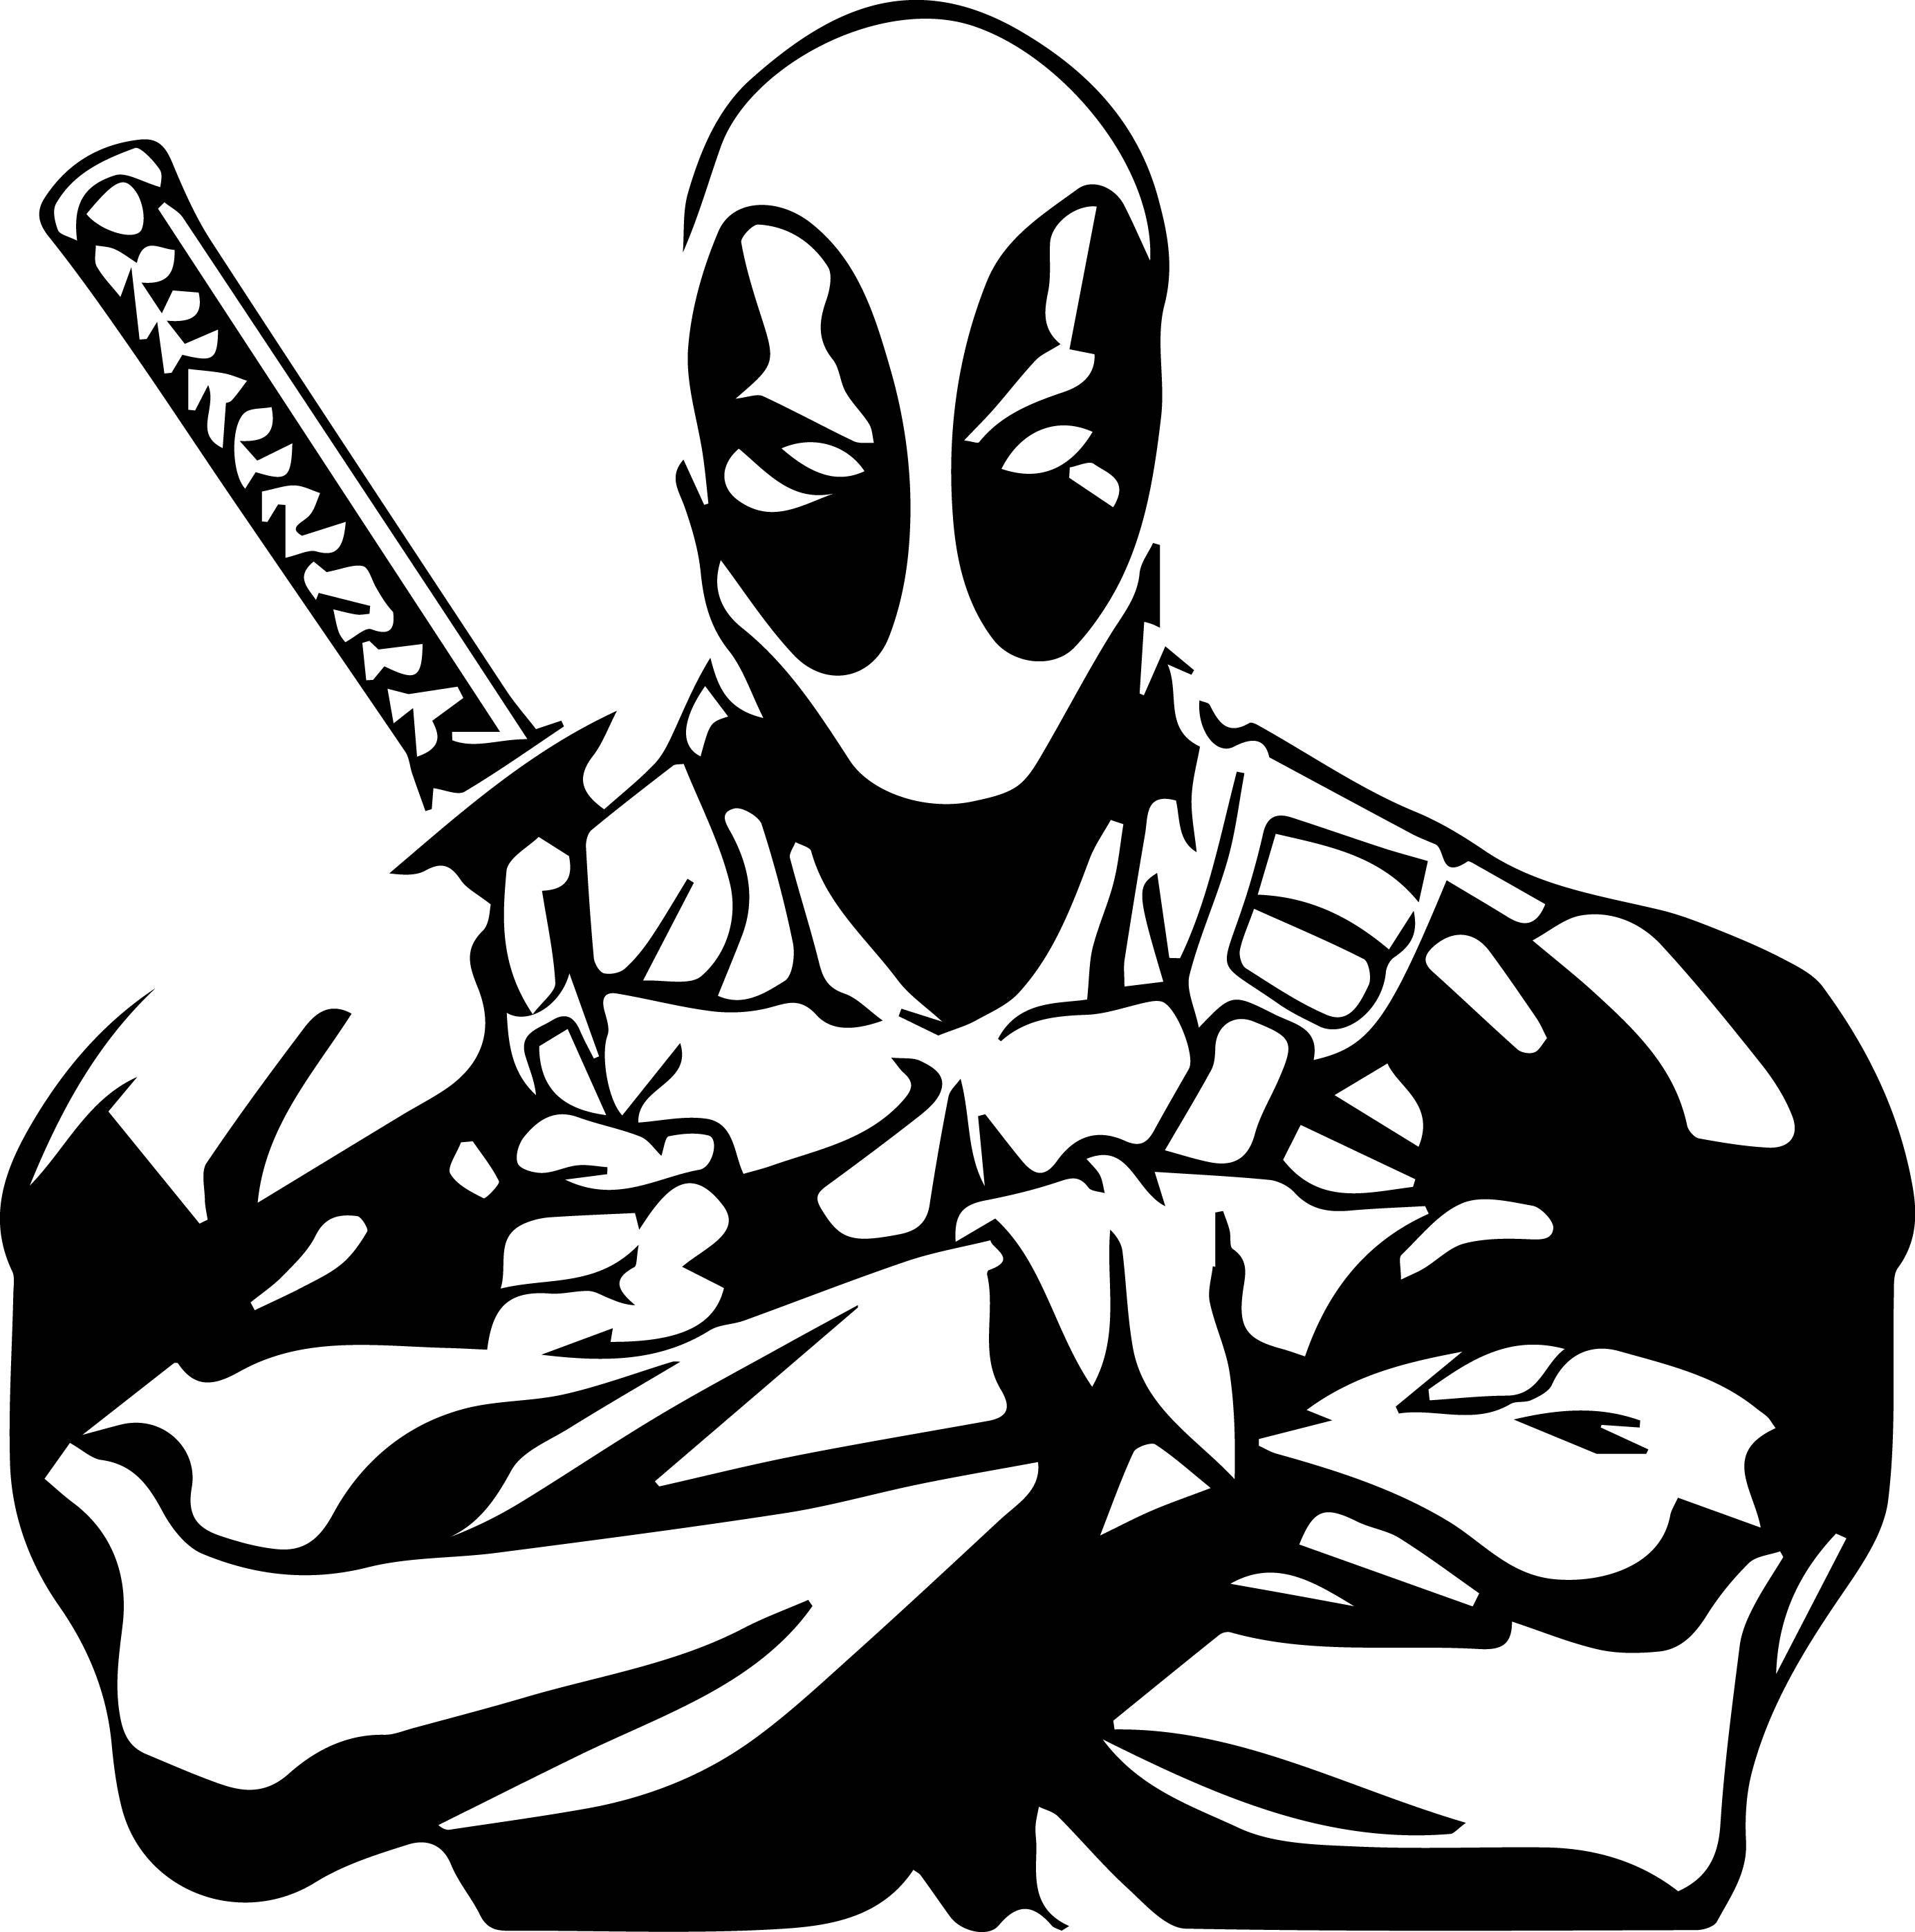 Deadpool Svg Files Silhouettes Dxf Files Cutting Files Cricut